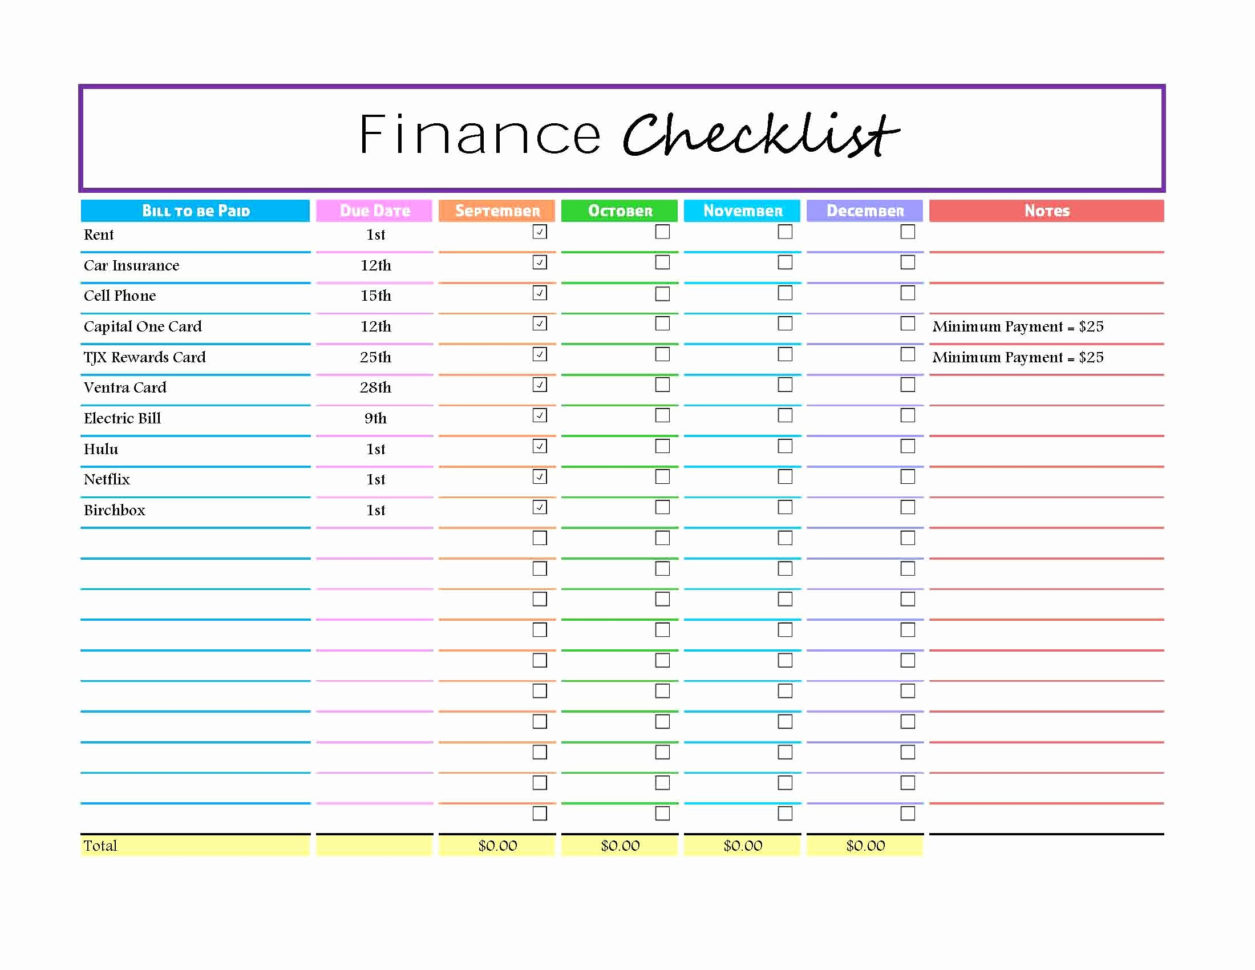 month end accounting checklist template monthly accounting close checklist template monthly accounting checklist template accounting month end checklist template excel monthly bookkeeping checklist template  45 New Image Of Accounting Month End Close Checklist | Resume Layout Within Monthly Accounting Checklist Template Monthly Accounting Checklist Template Spreadsheet Templates for Busines